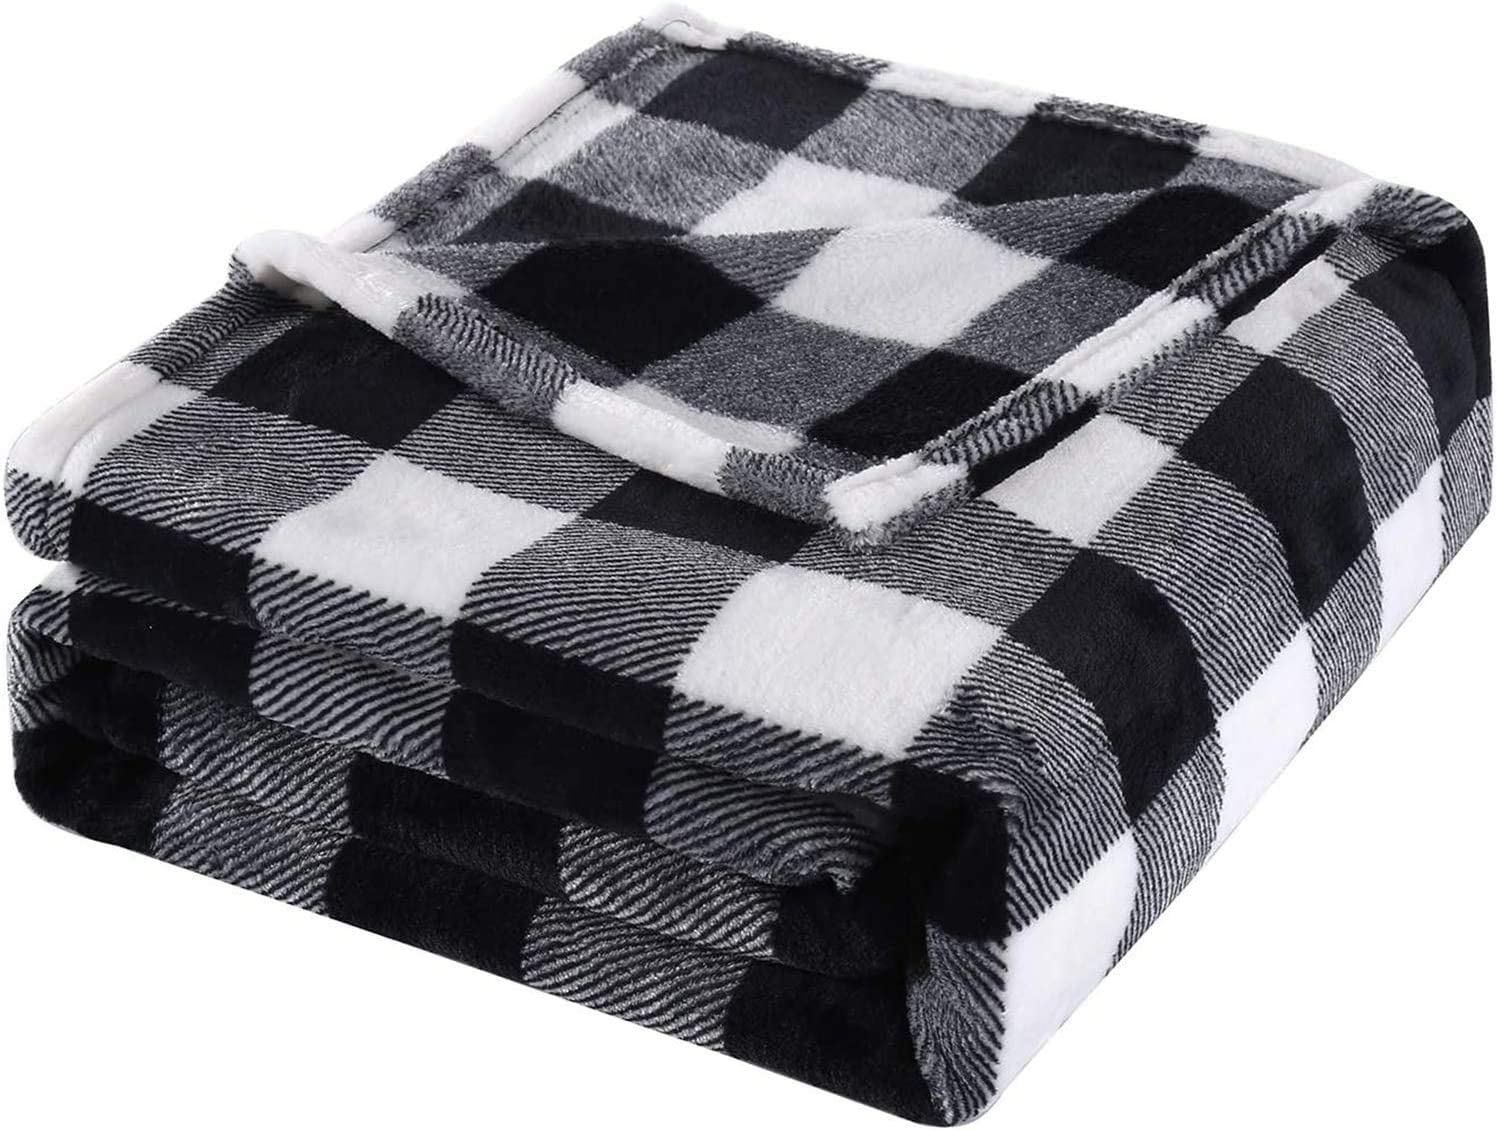 Bobor Buffalo Plaid Throw Blanket for Couch Bed, Christmas Flannel Fleece Red Black Checker Plaid Decorative Throw, Fuzzy, Fluffy, Plush, Soft, Cozy, Warm Blankets